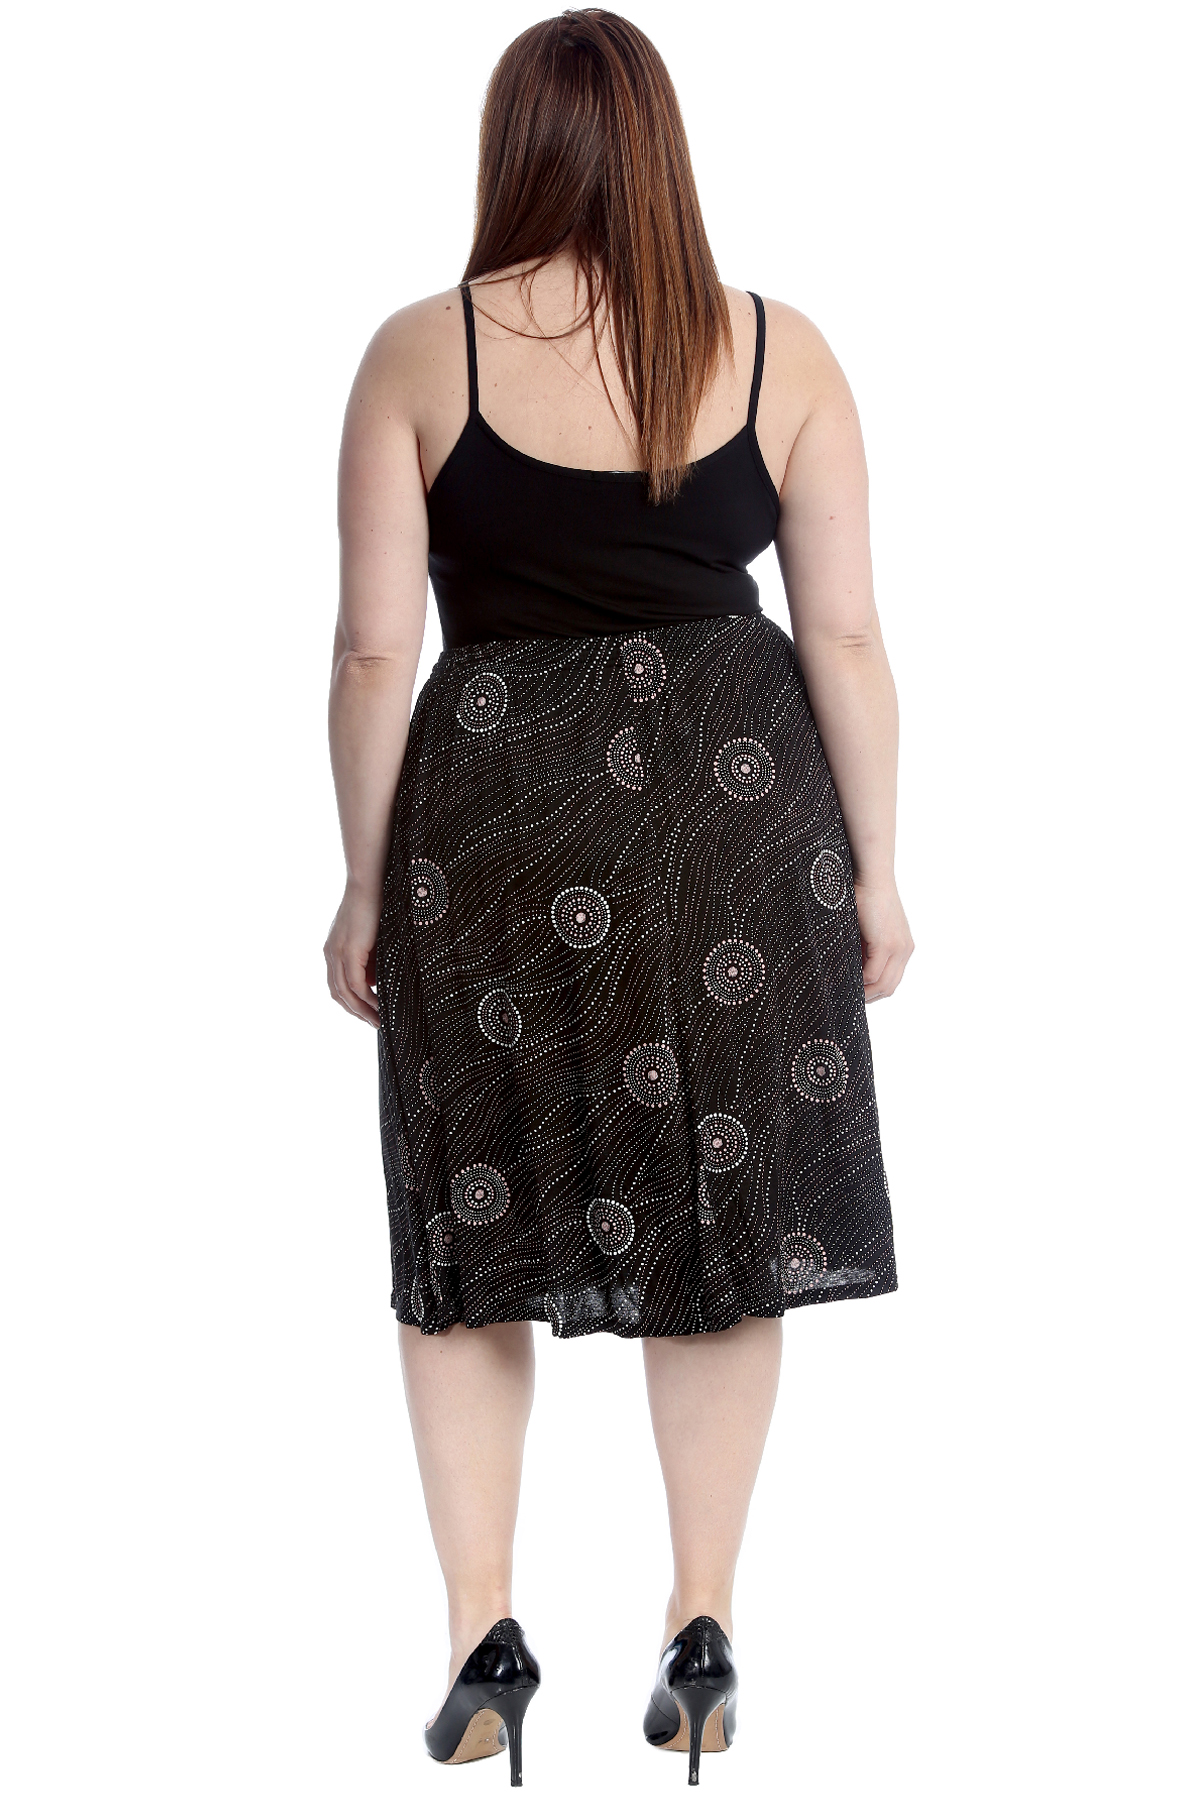 New Womens Skirt Plus Size Ladies Abstract Circle Striped Print Skater Knee Long